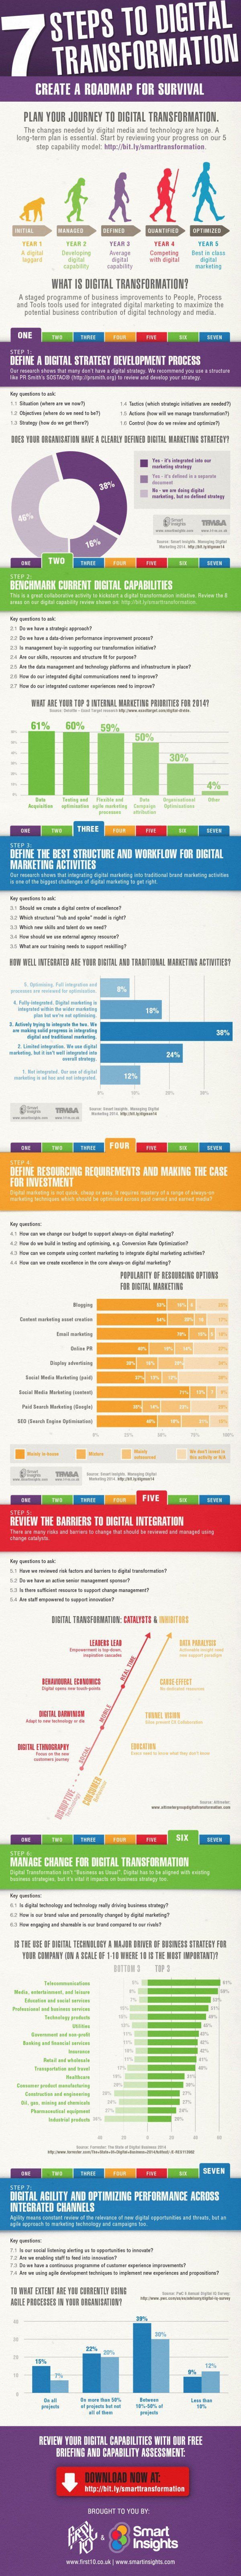 Really Helpful Digital Marketing Transformation Infographic by Smart Insights